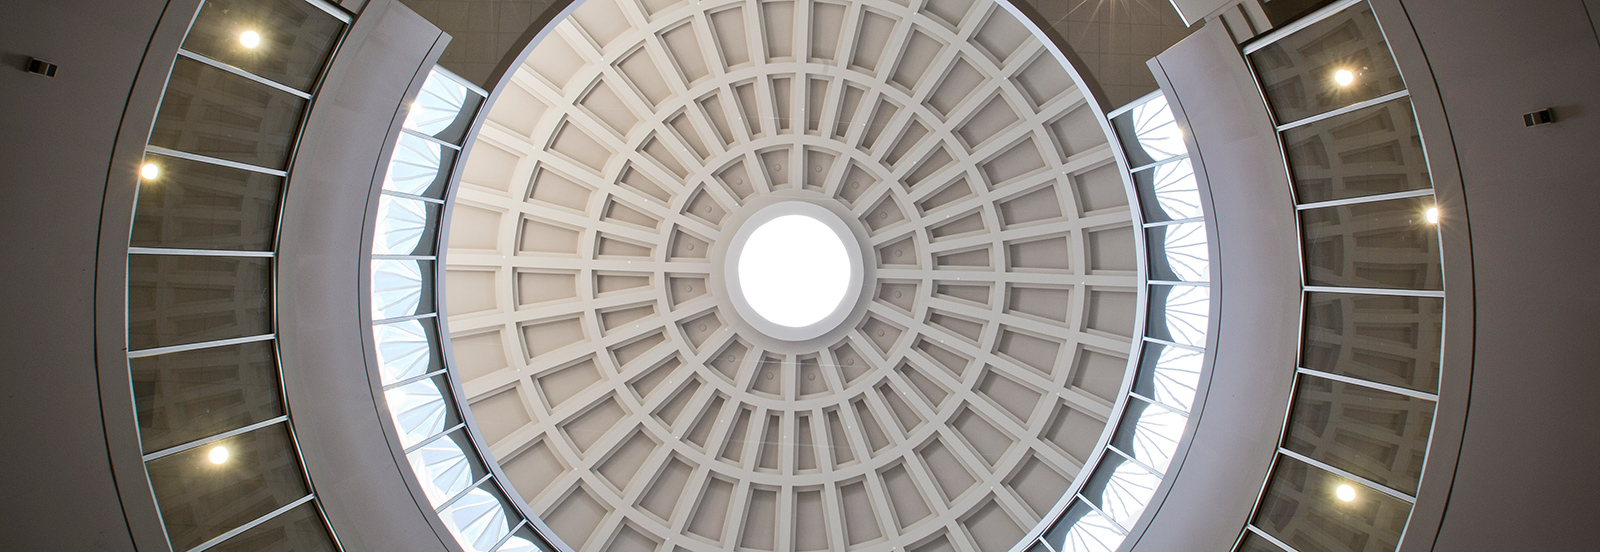 Ceiling in McWherter Llibrary Rotunda